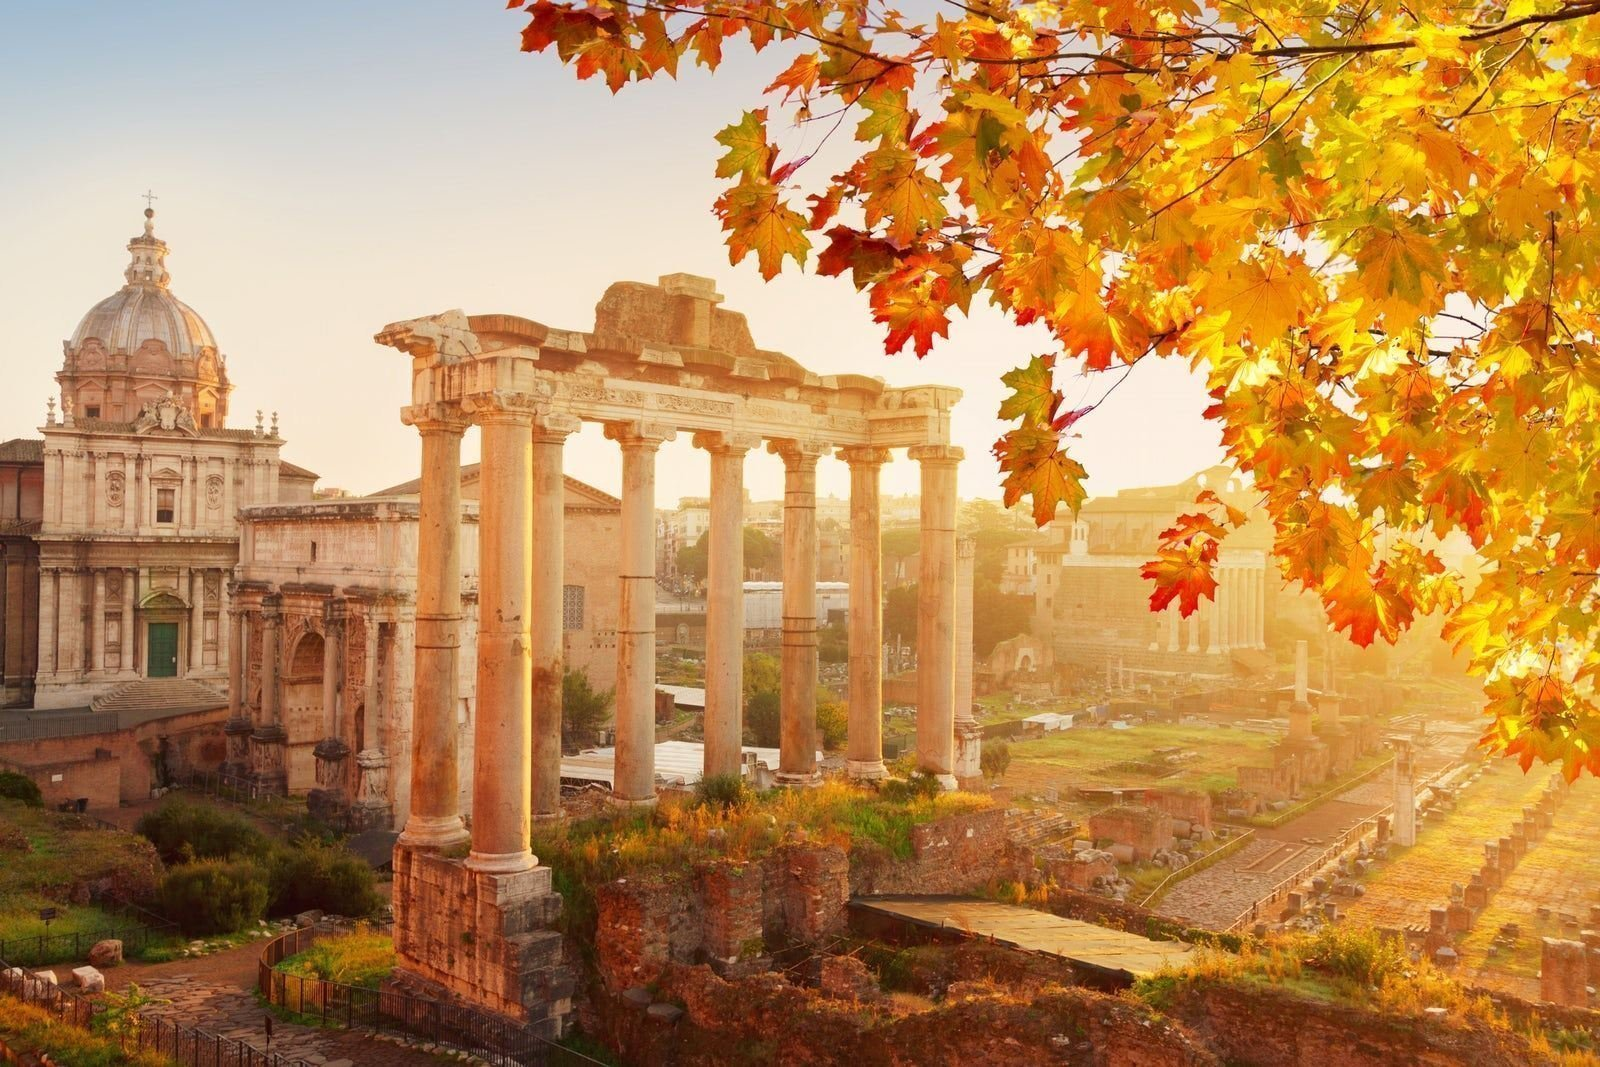 Online events in ROME in November